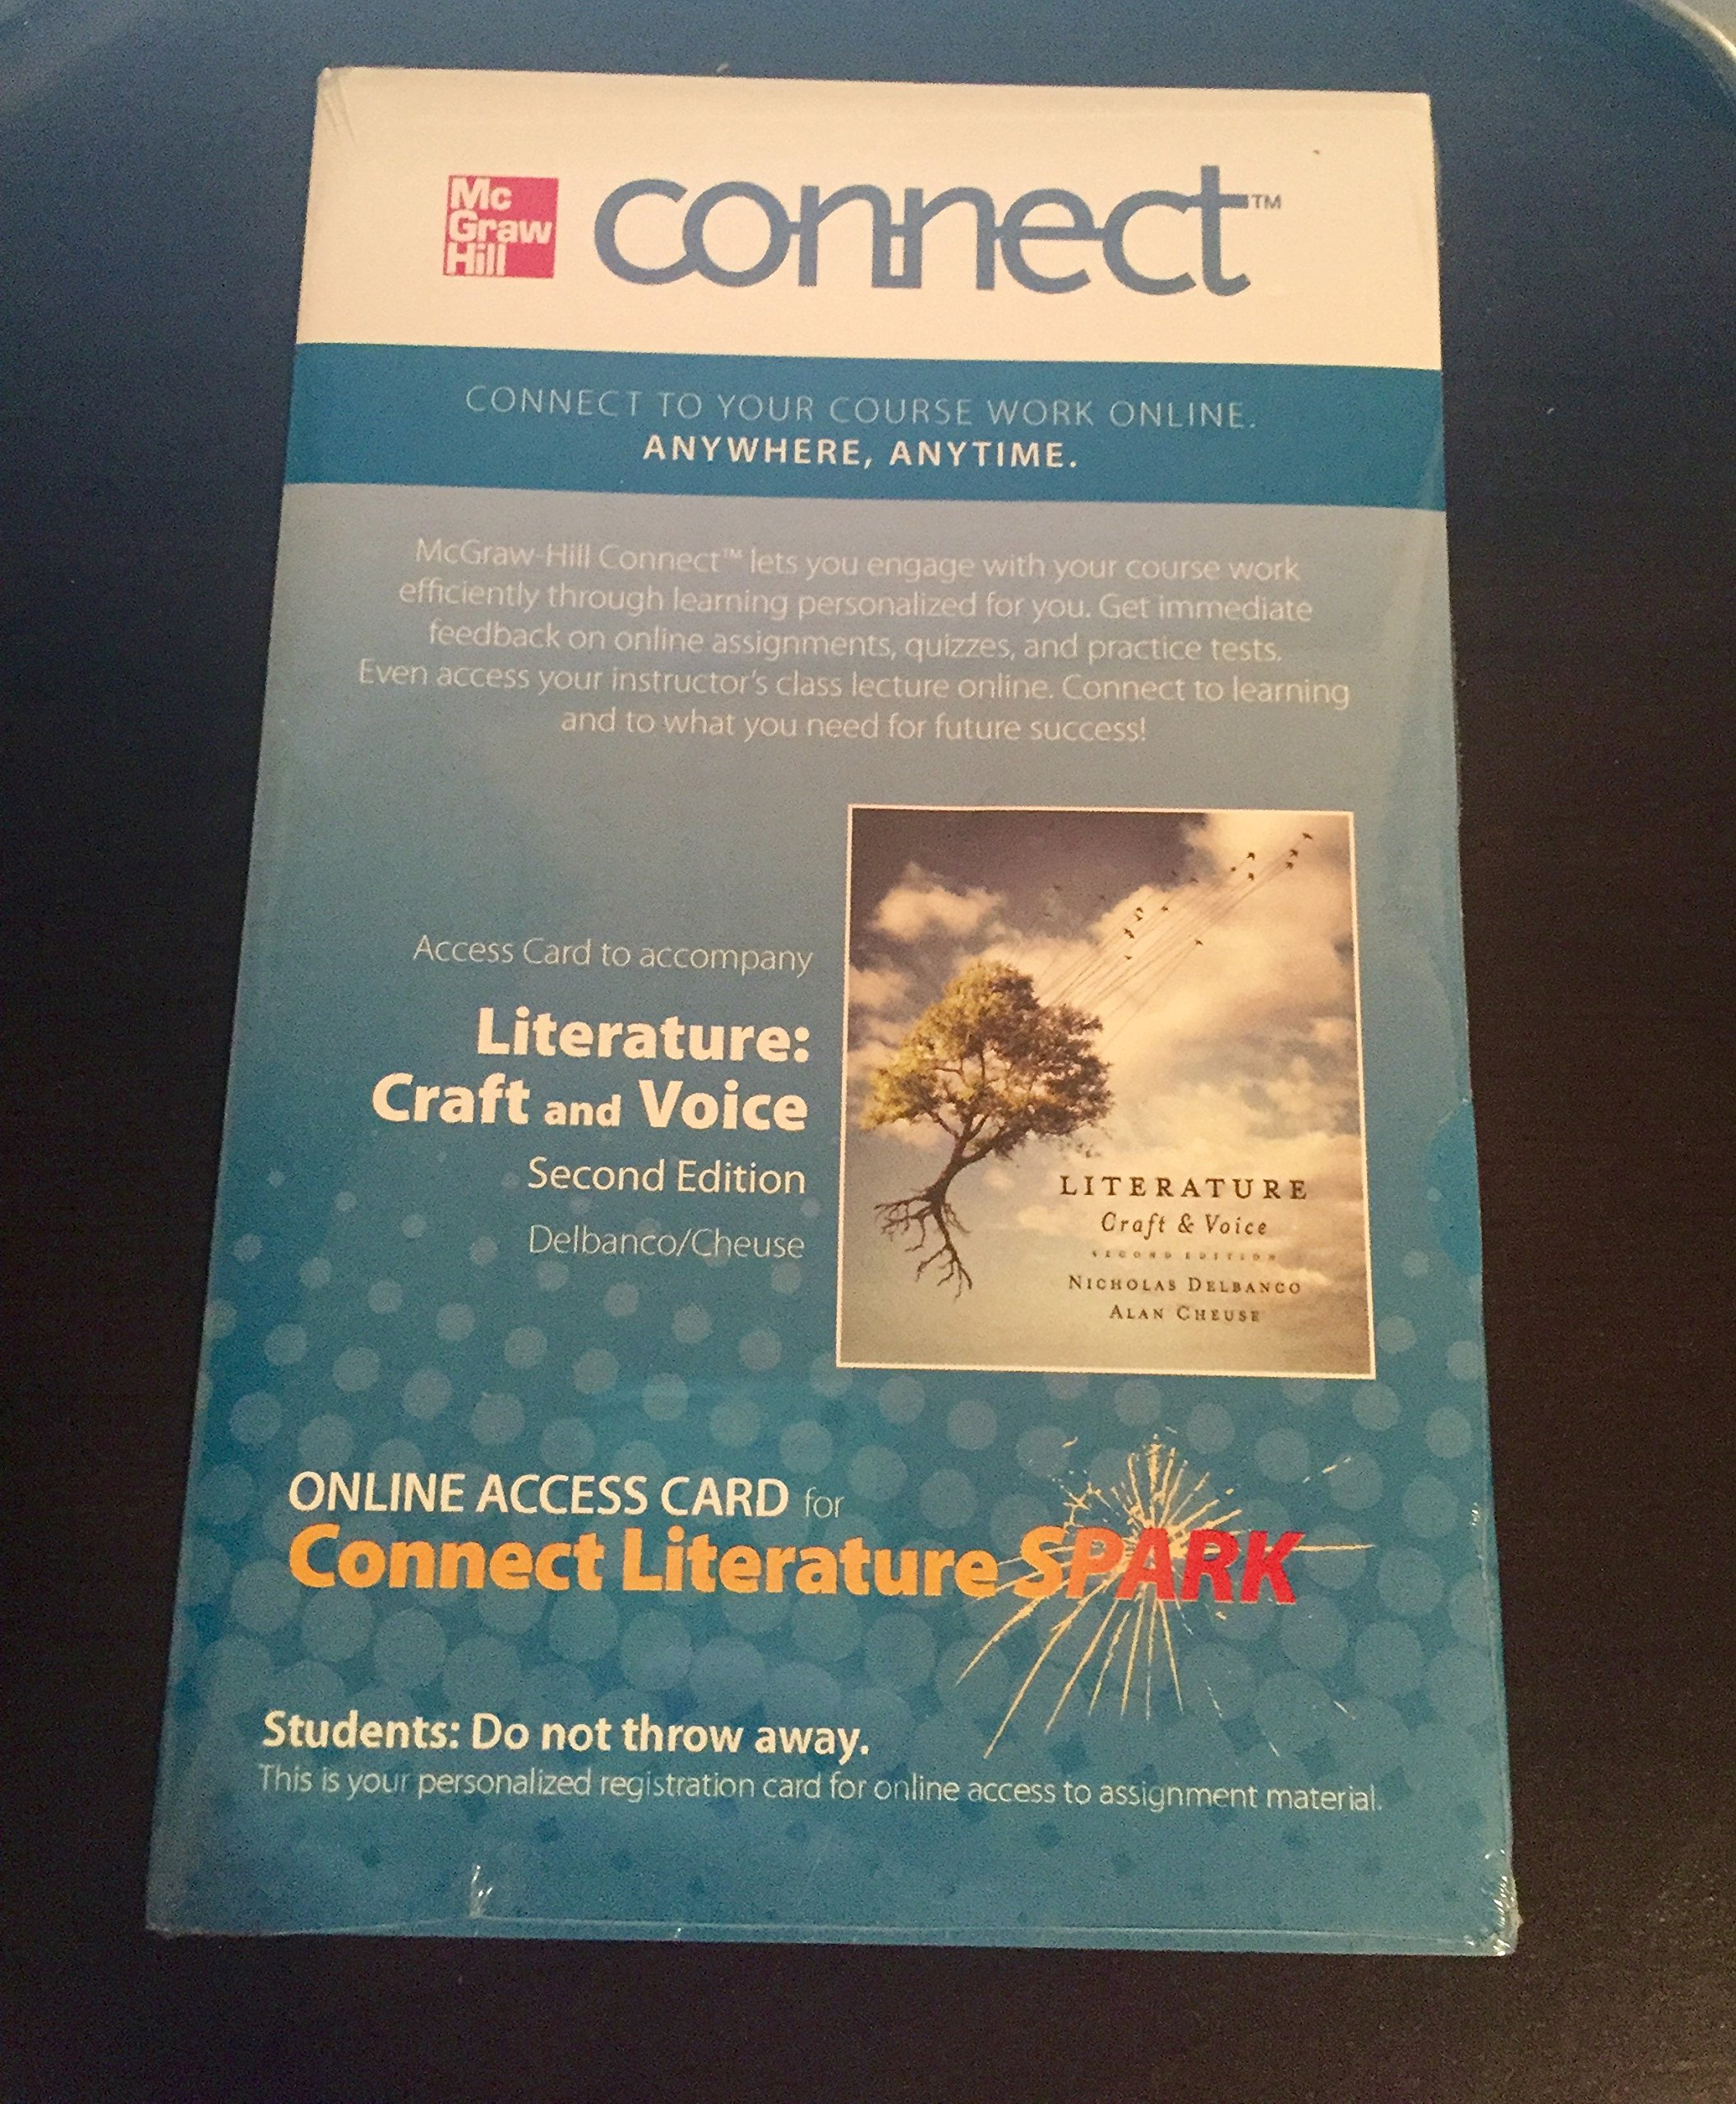 Read Online Literature Craft and Voice 2nd Edition Online Access Card PDF